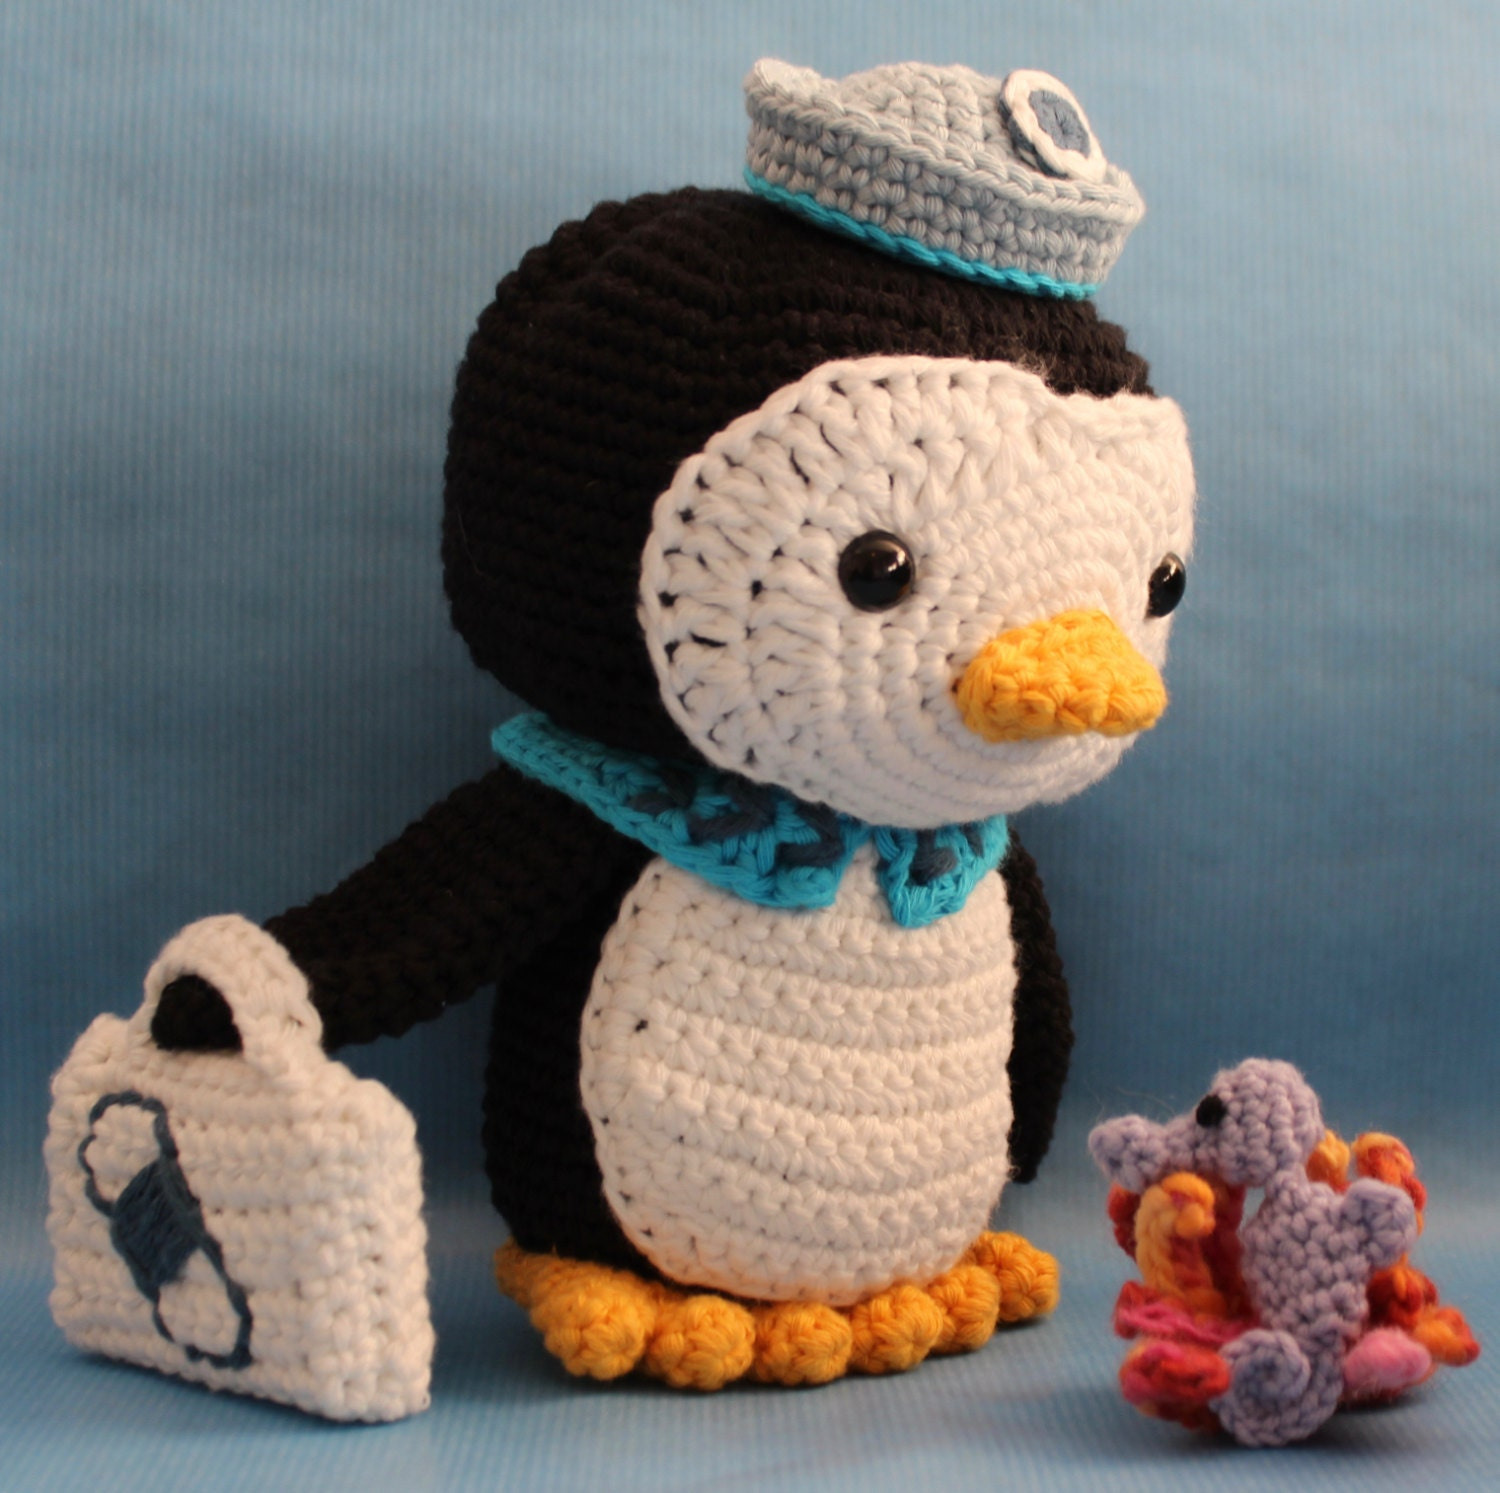 Octonauts peso crochet pattern crochet toys peso pattern this is a digital file bankloansurffo Image collections